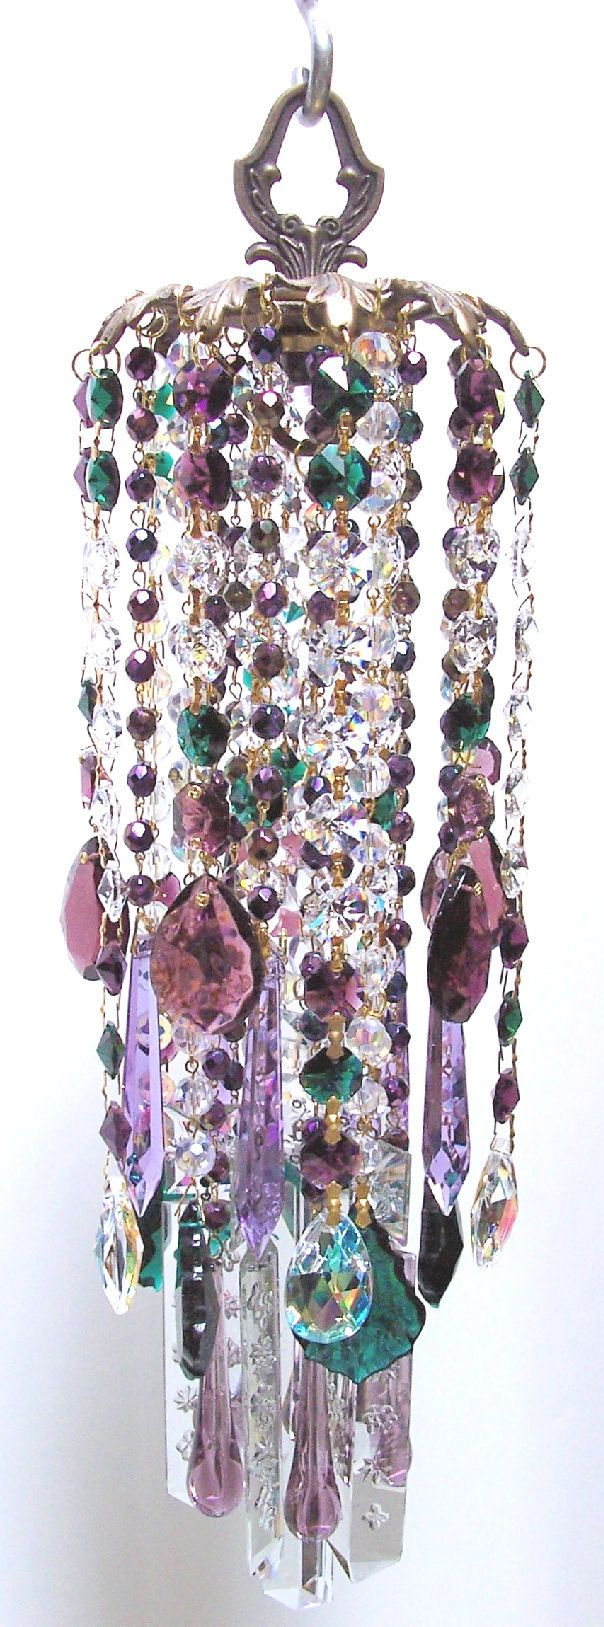 Forest Nymph Vintage Crystal Wind Chime...most beautiful...wow!